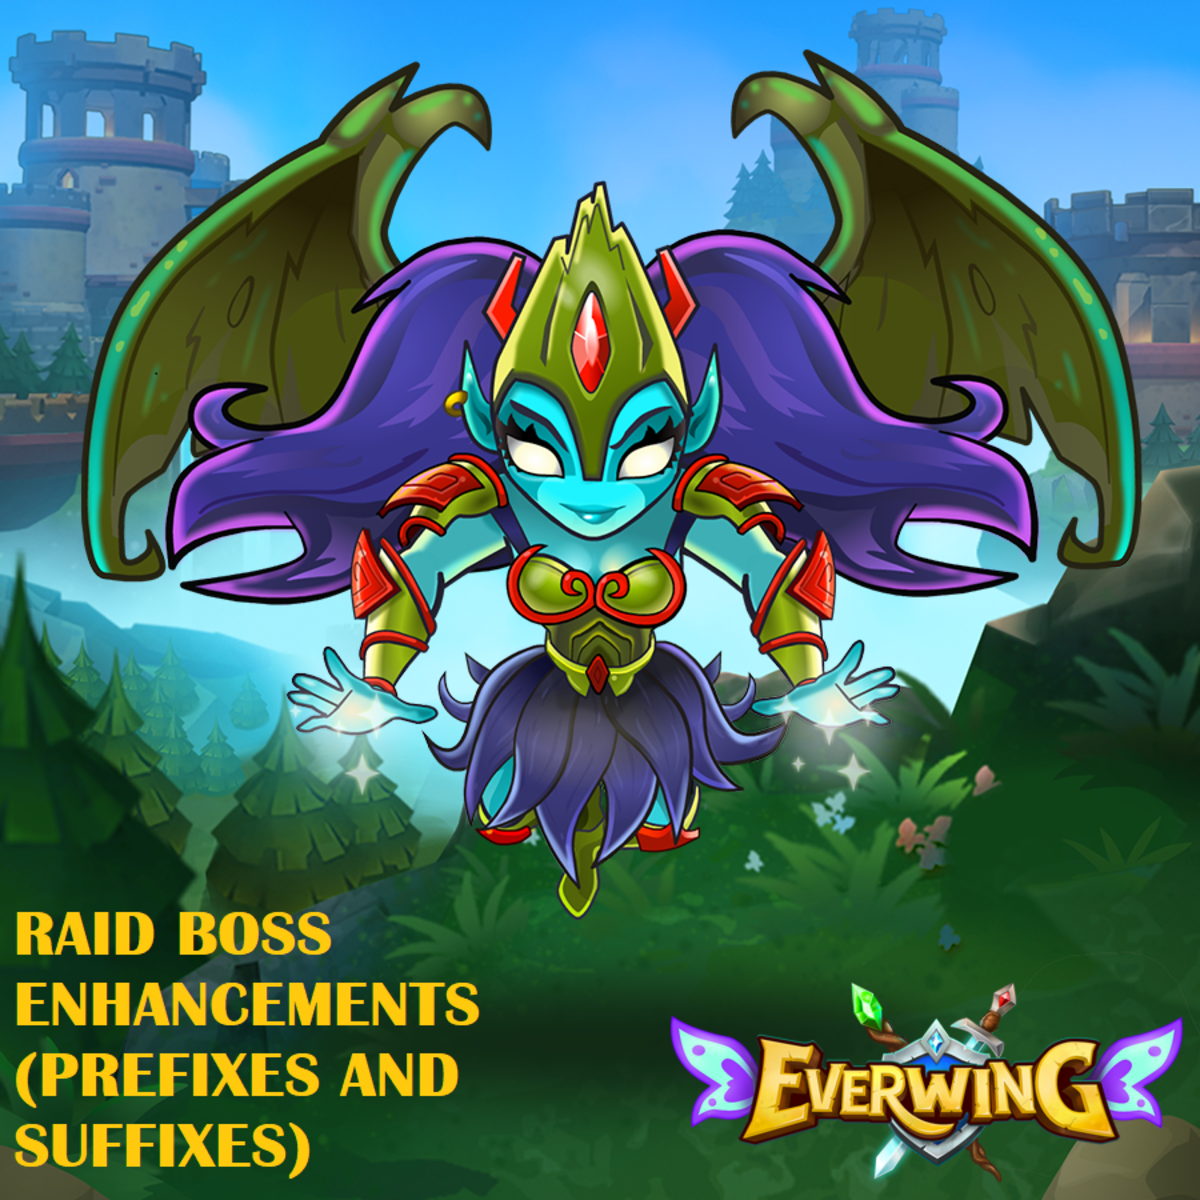 EverWing: Raid Boss Enhancements (Prefixes and Suffixes)